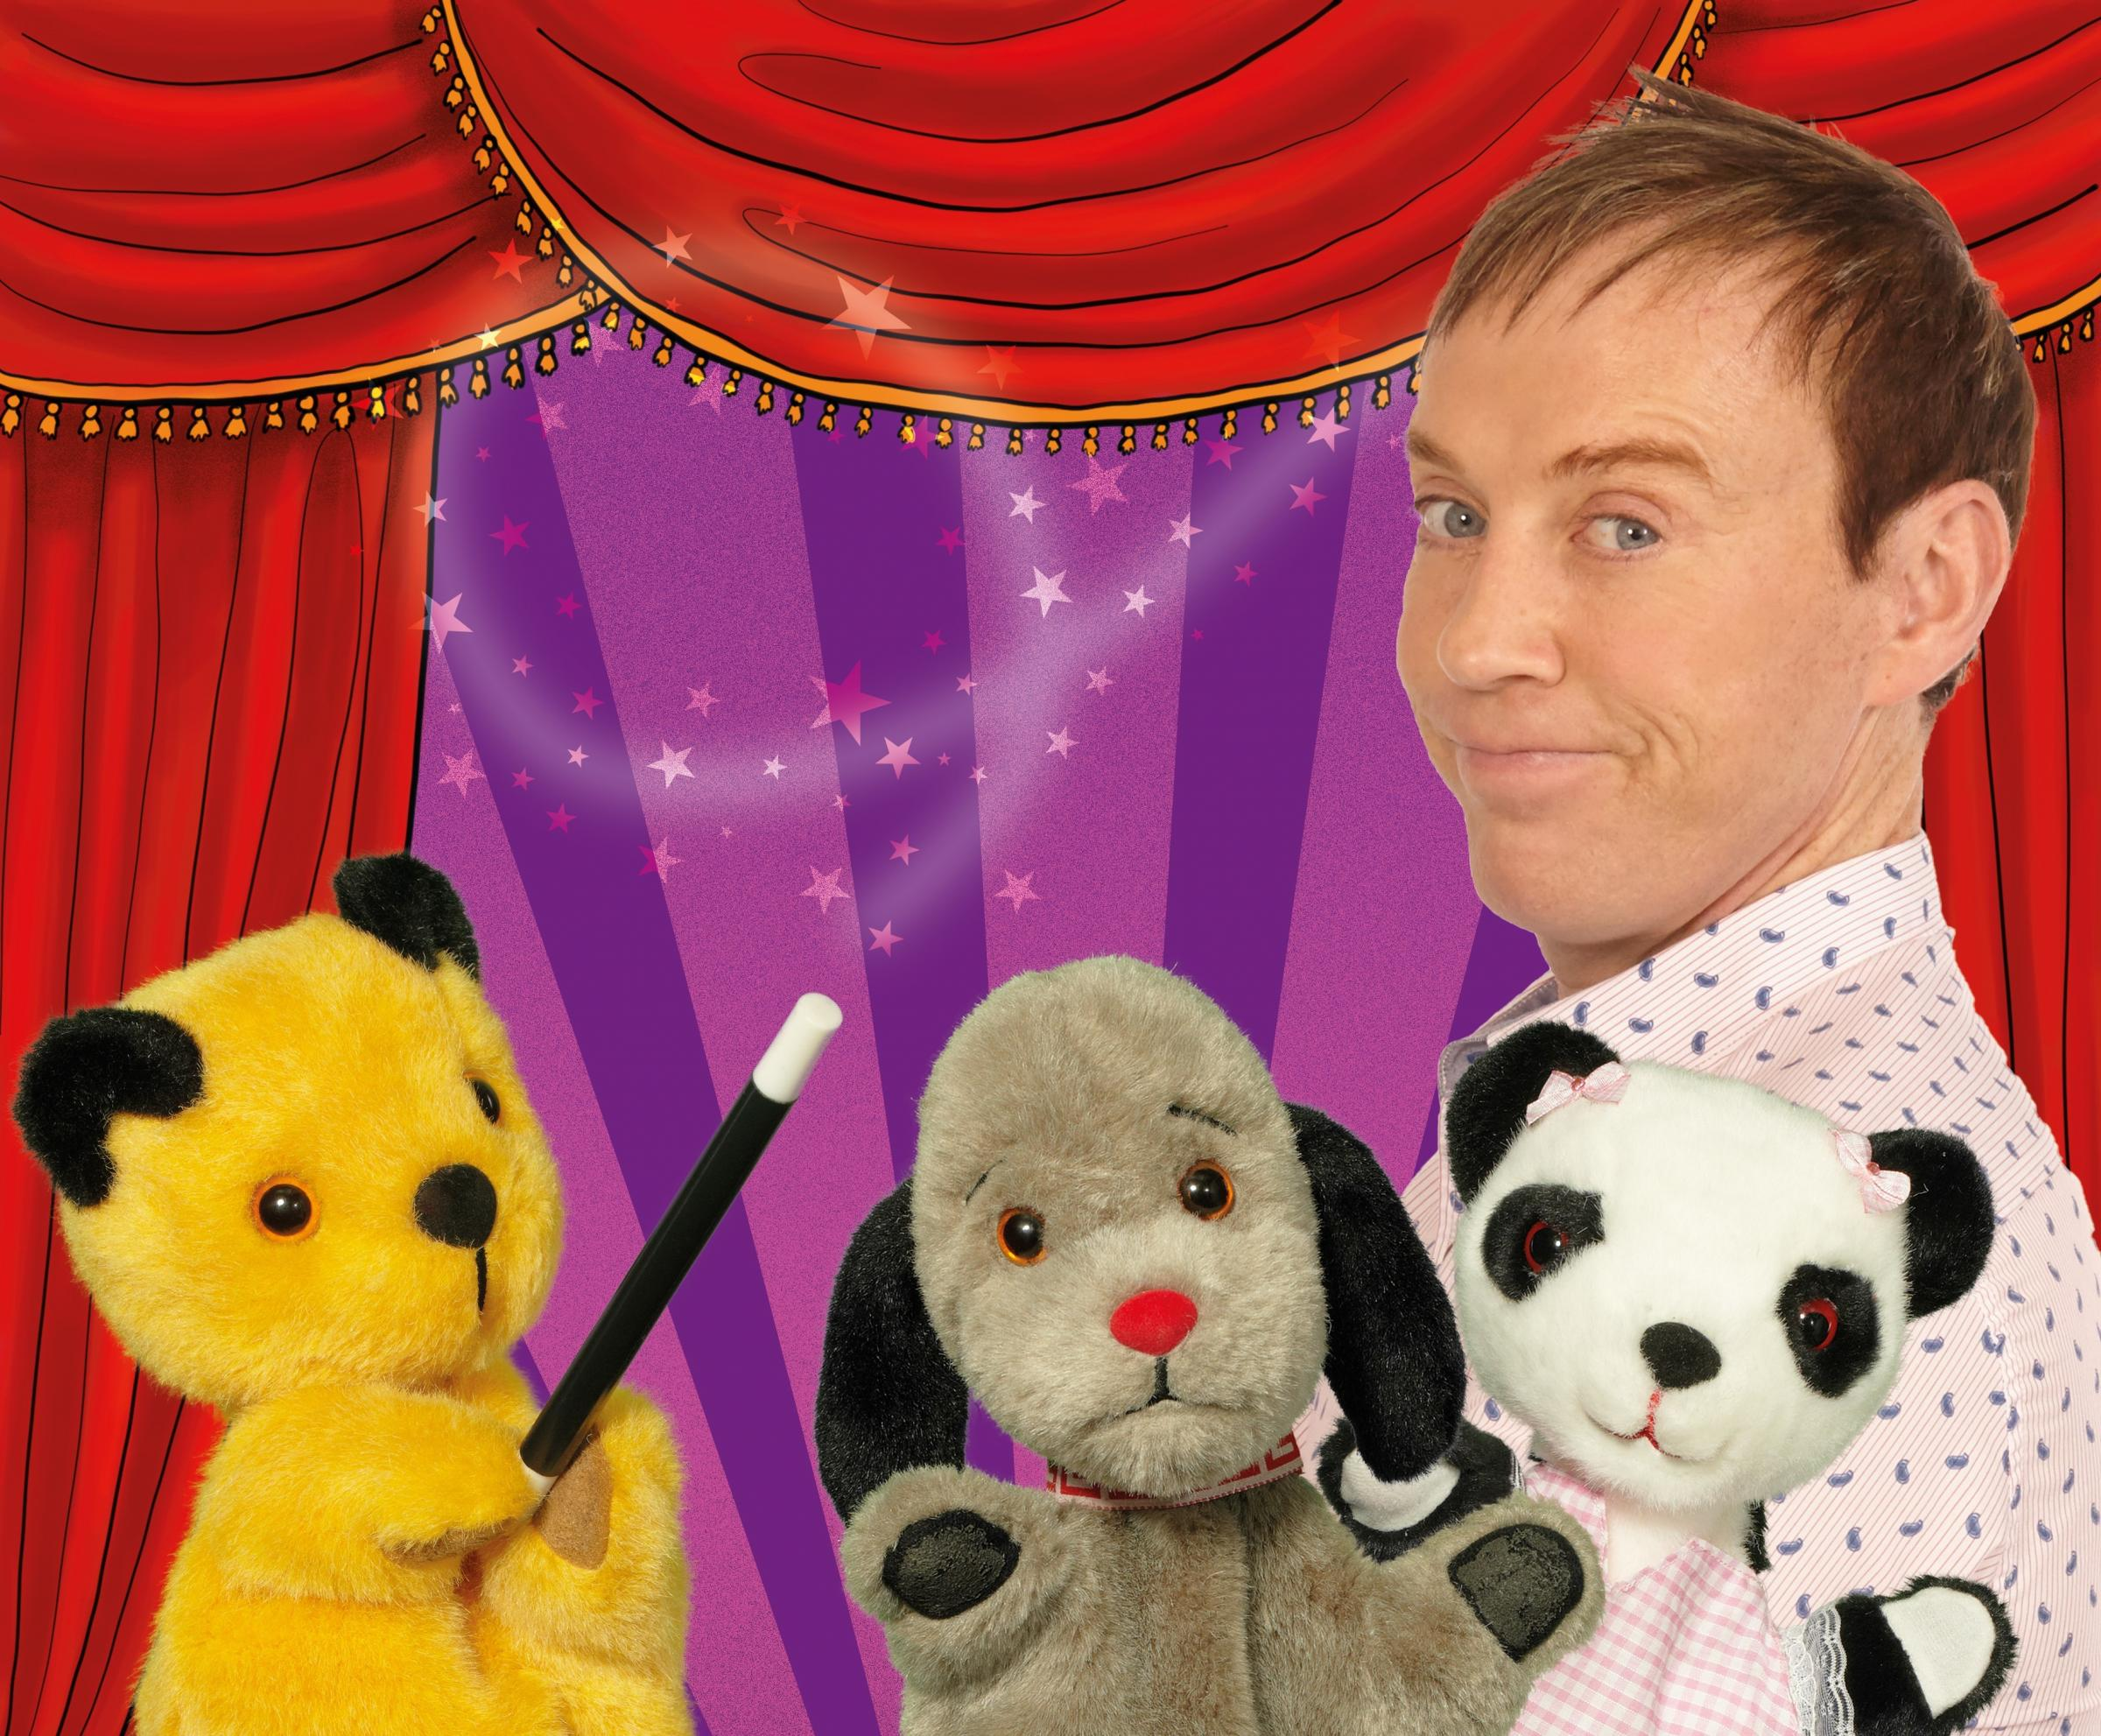 Sooty Show to cast its magic and mischief on Parr Hall